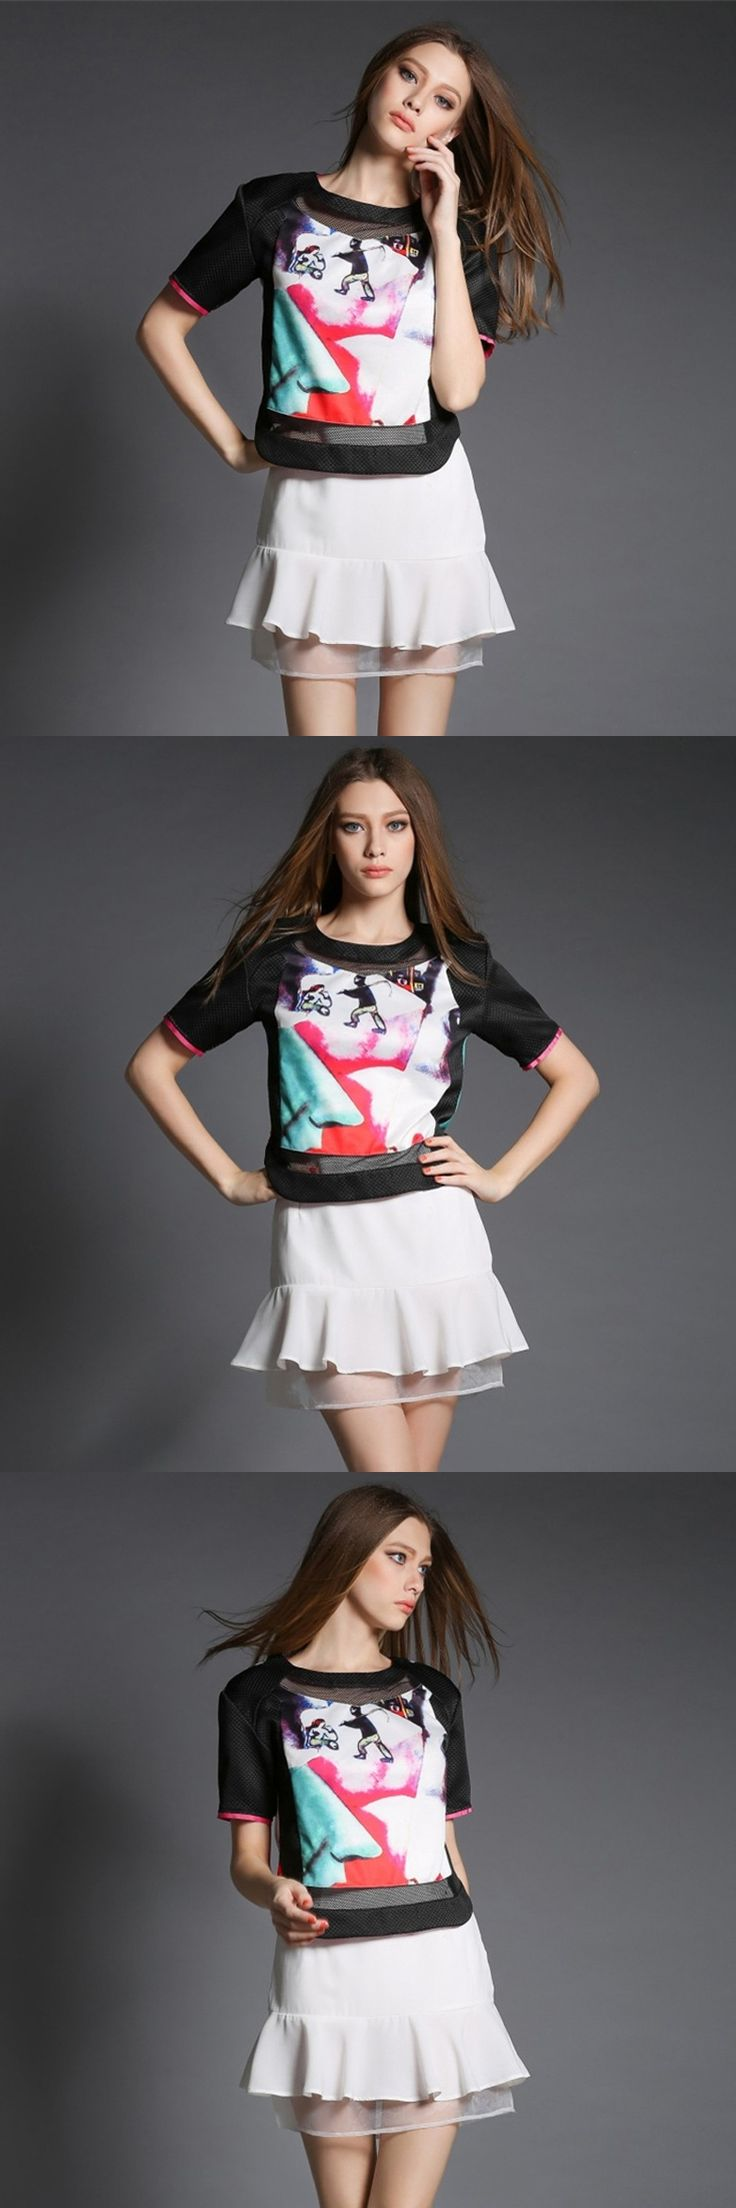 2015 New Arrival Name Brand Casual Printed Short Sleeves Top + mini Mermaid skirt Fashion patchwork Twinset Suit For Women OM357